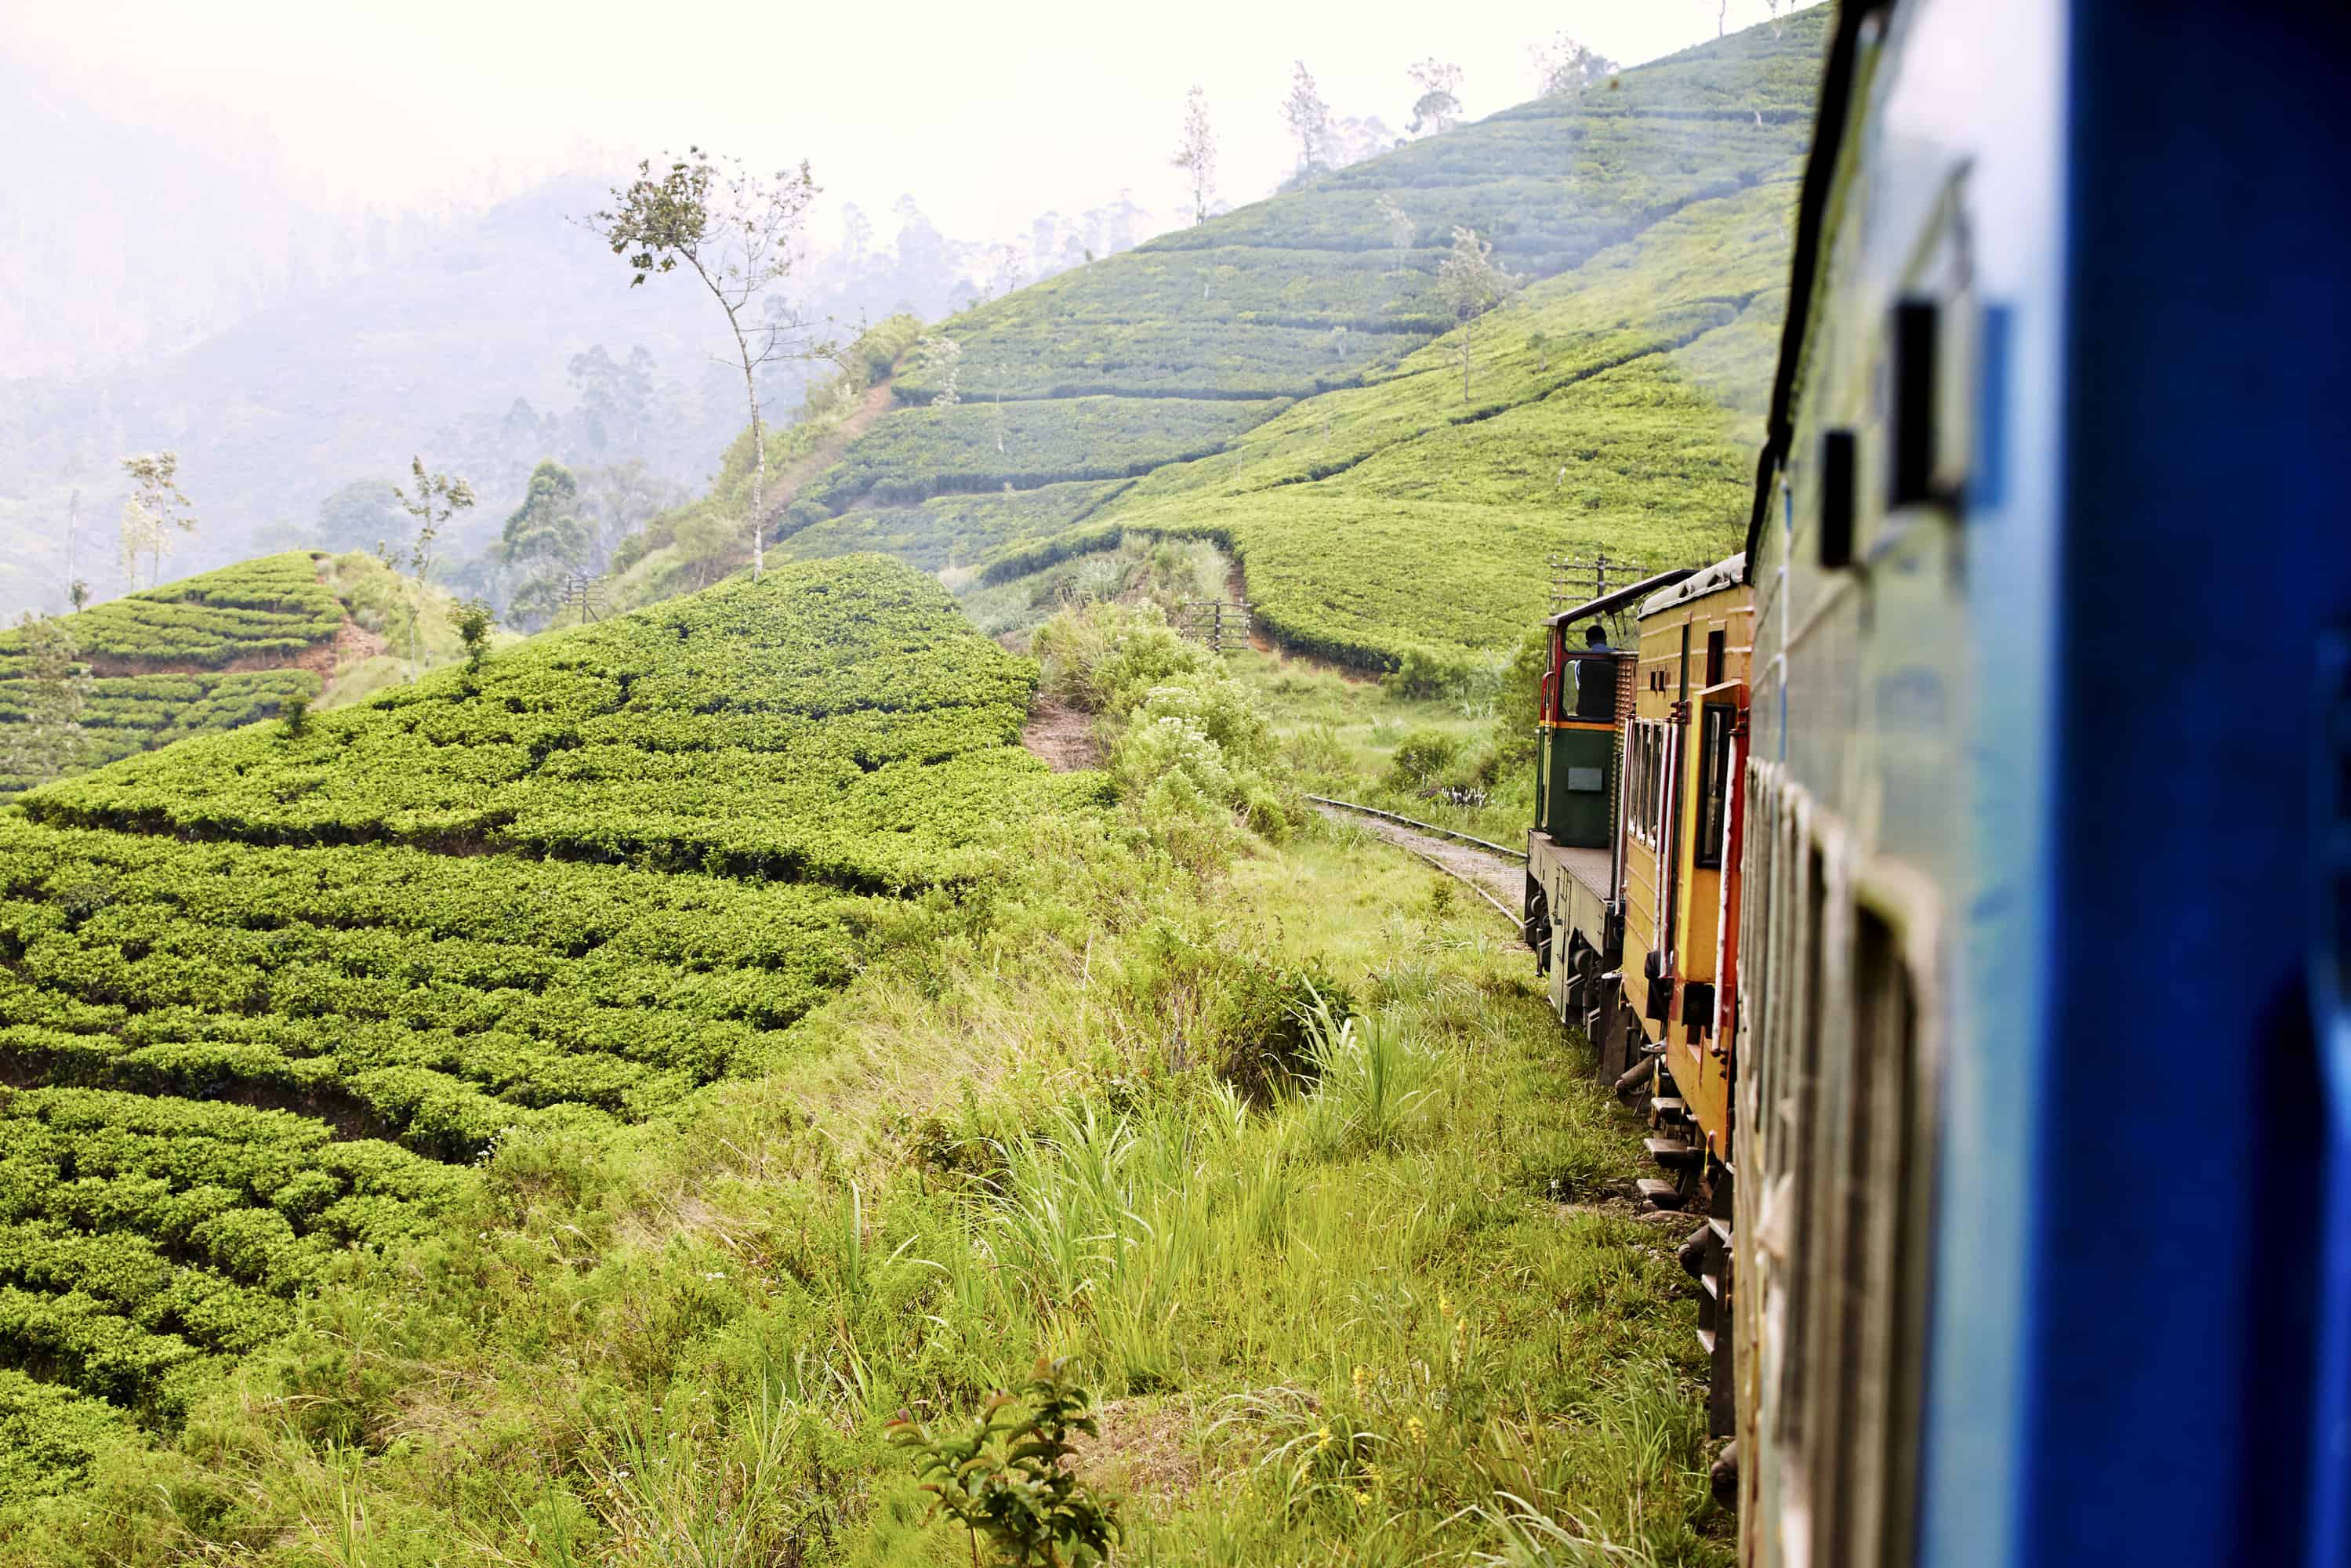 Train travelling through tea plantations in the hill country of Sri Lanka